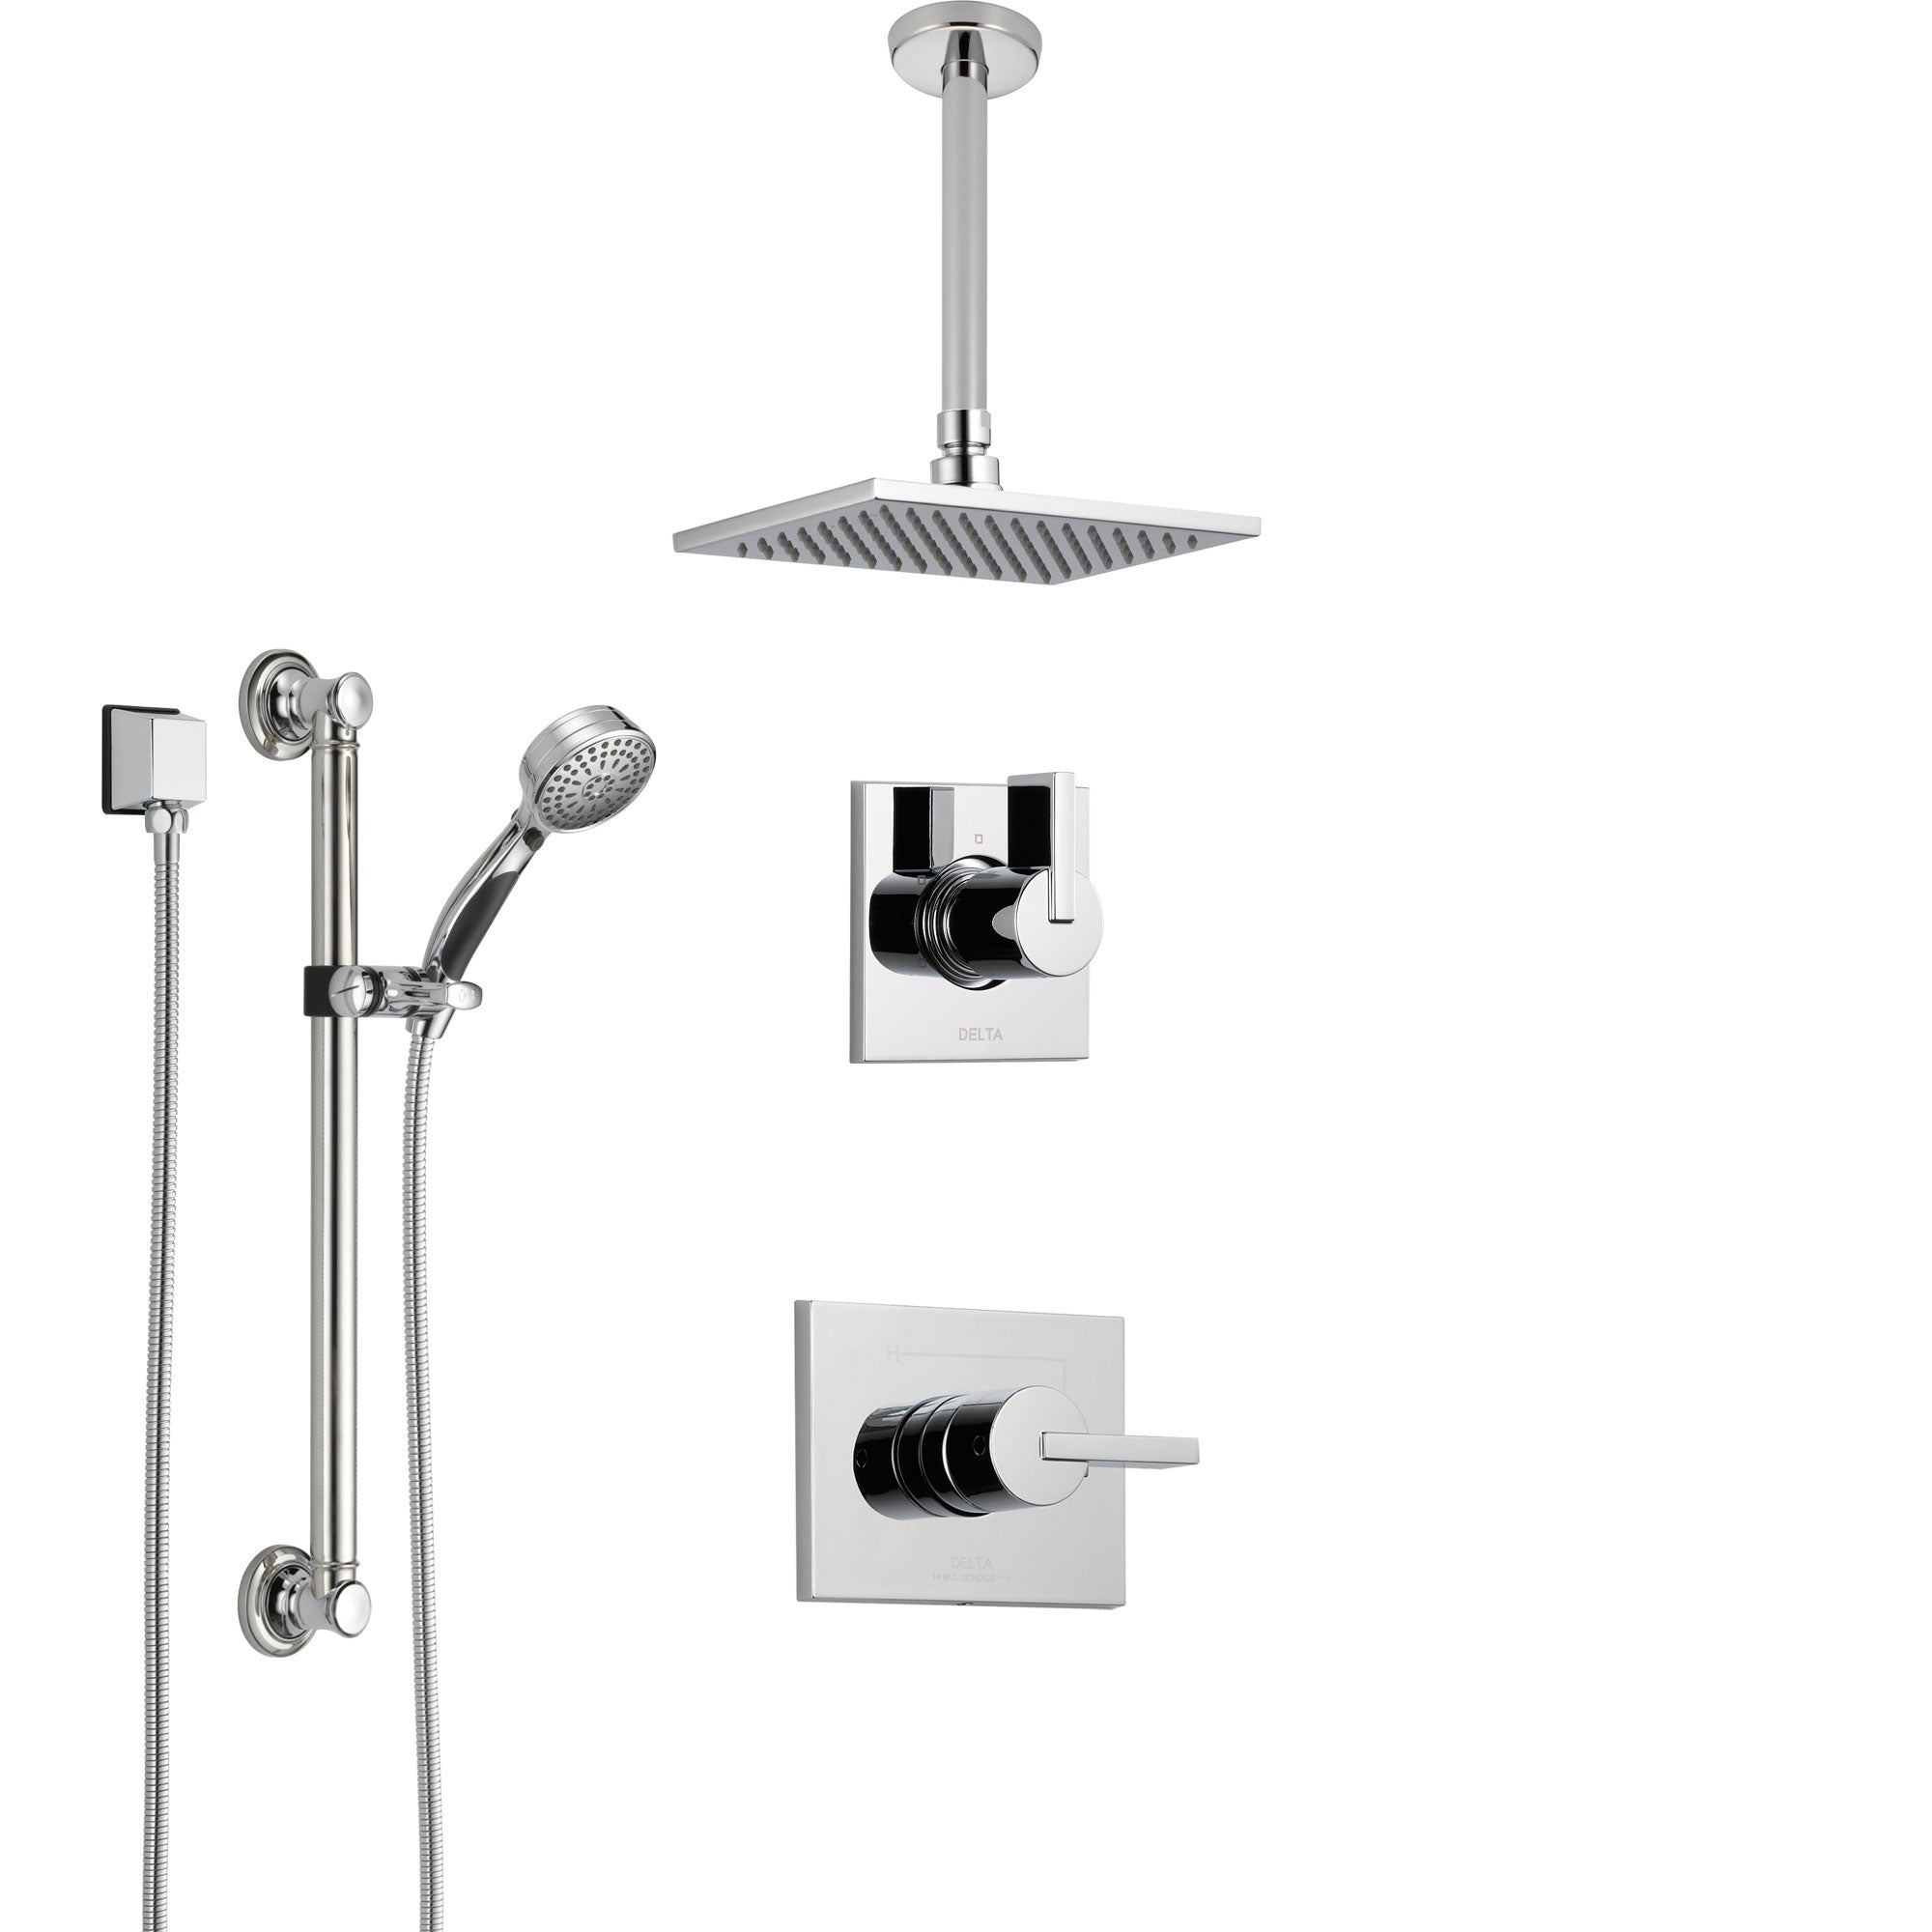 Delta Vero Chrome Finish Shower System with Control Handle, 3-Setting Diverter, Ceiling Mount Showerhead, and Hand Shower with Grab Bar SS14531